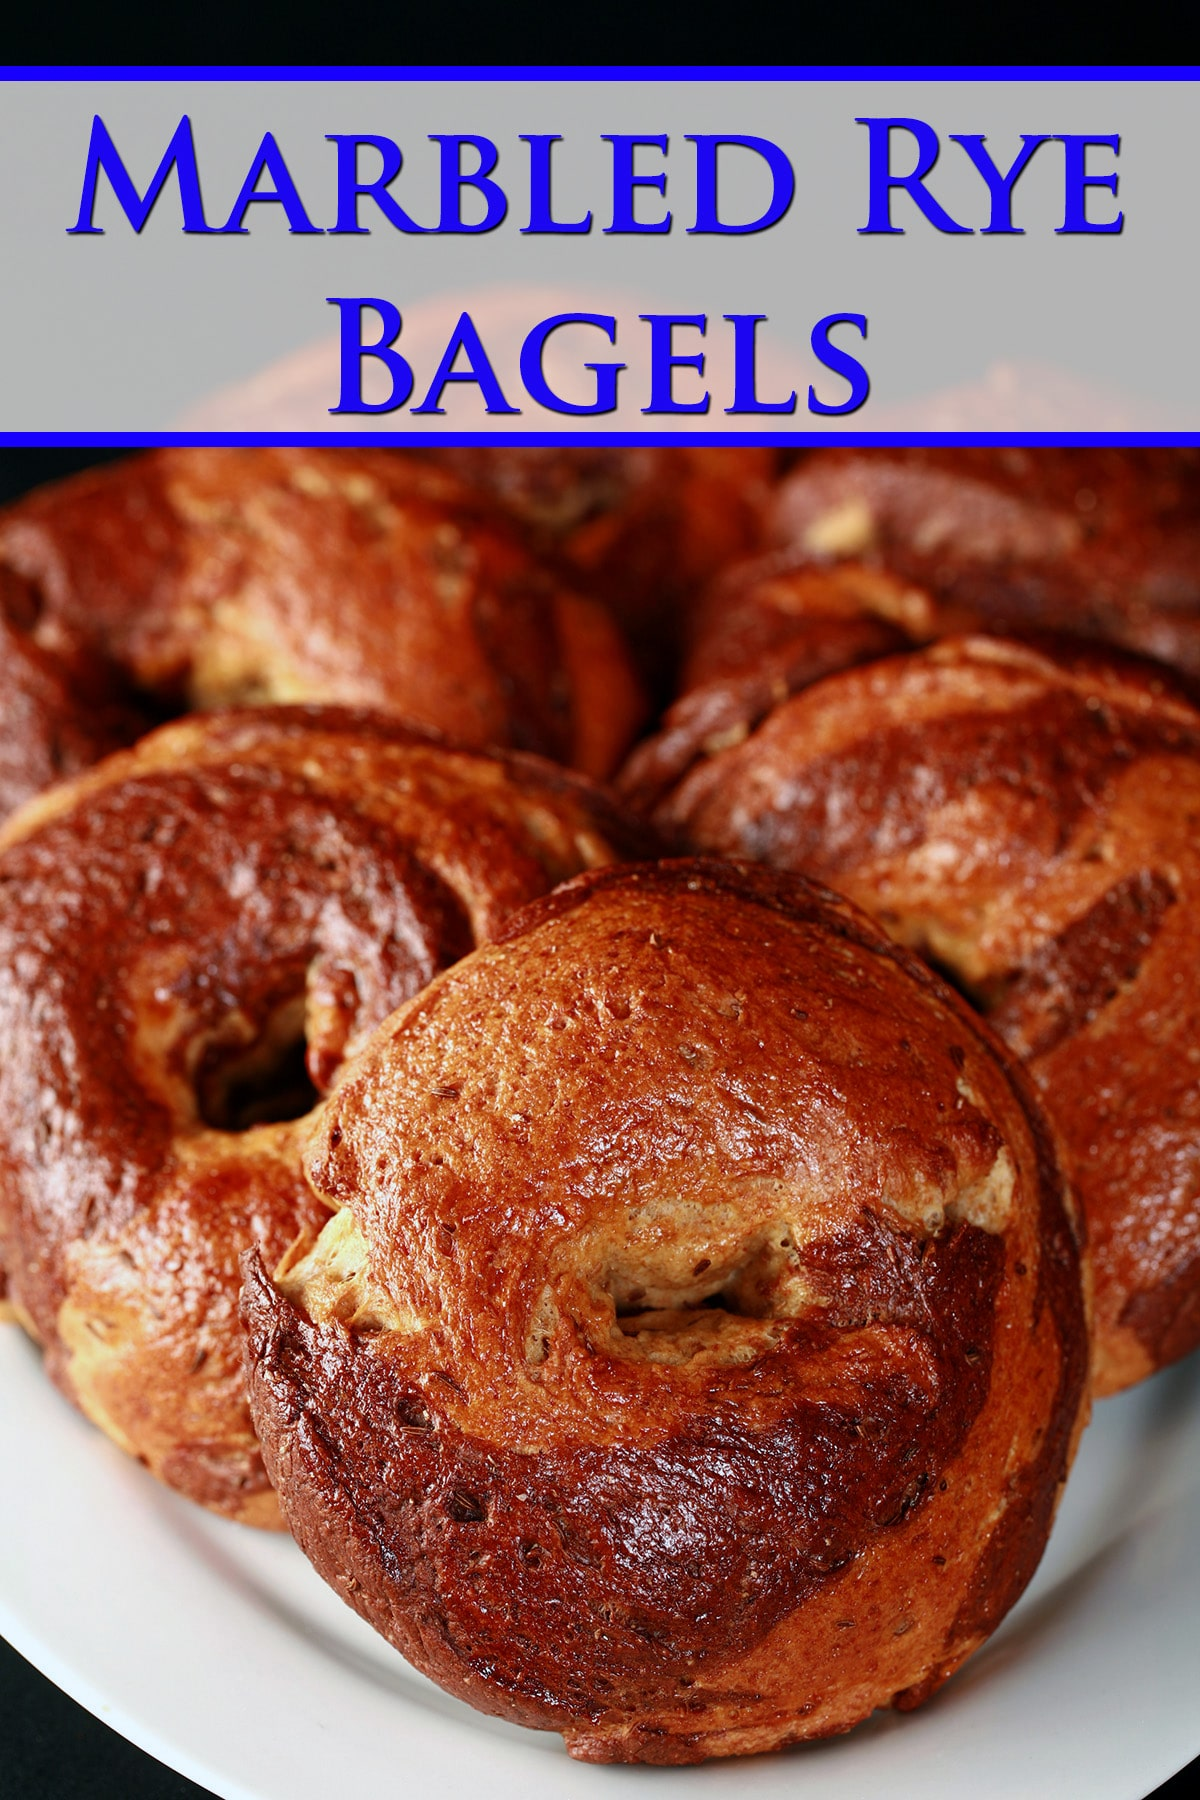 A plate of 6 golden brown marble rye bagels.